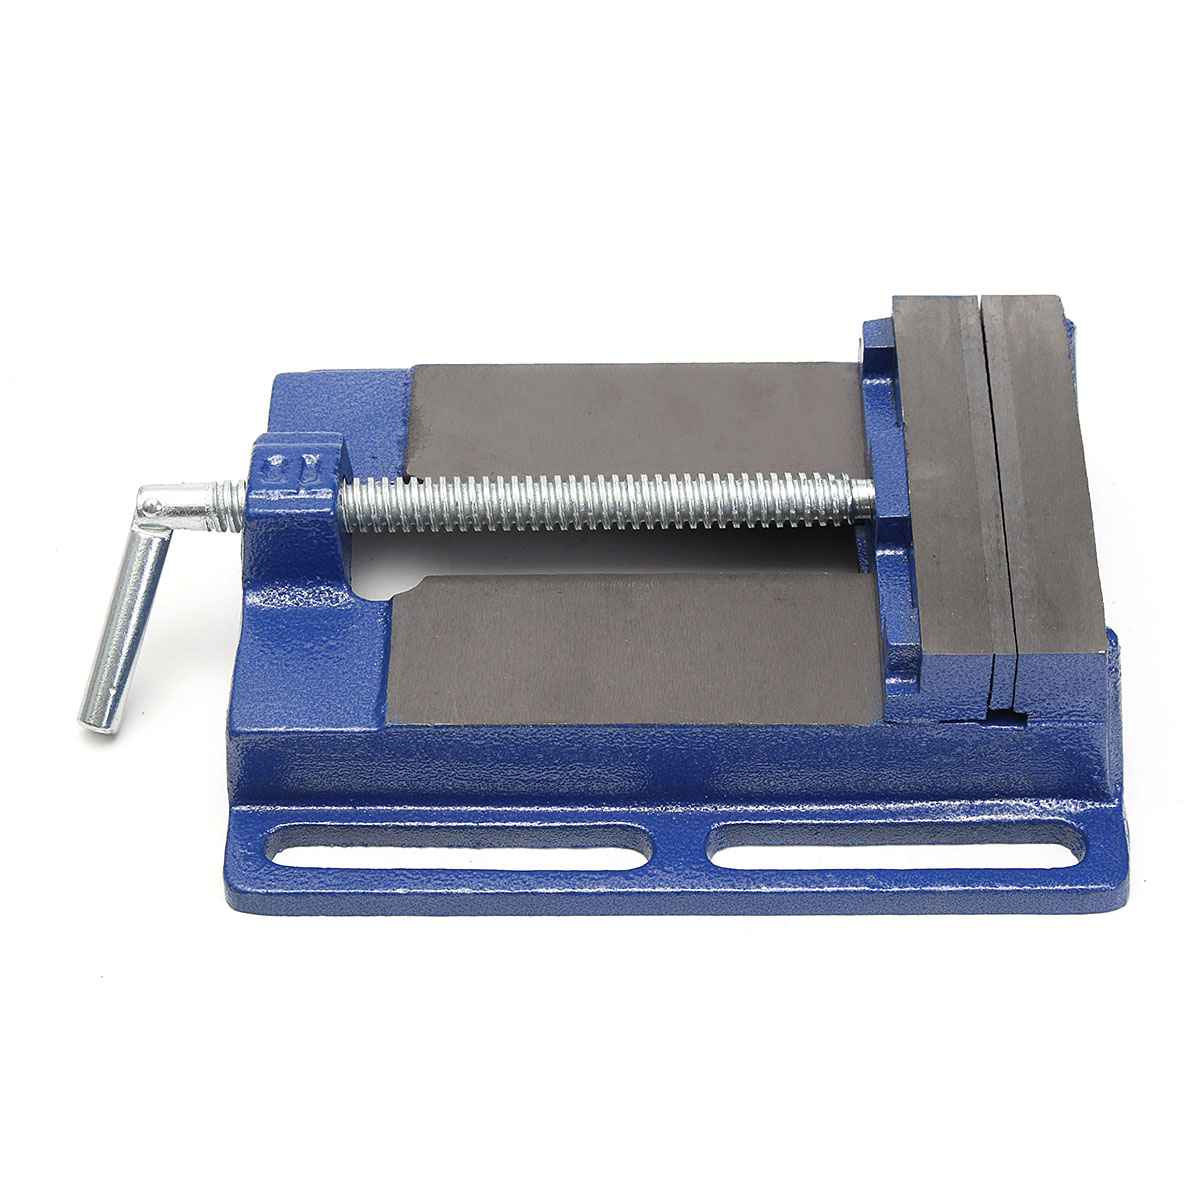 6Inch Drill Press Vise Pipe Clamping Holding 5-1/2 Throat Open Workbench Drill HD